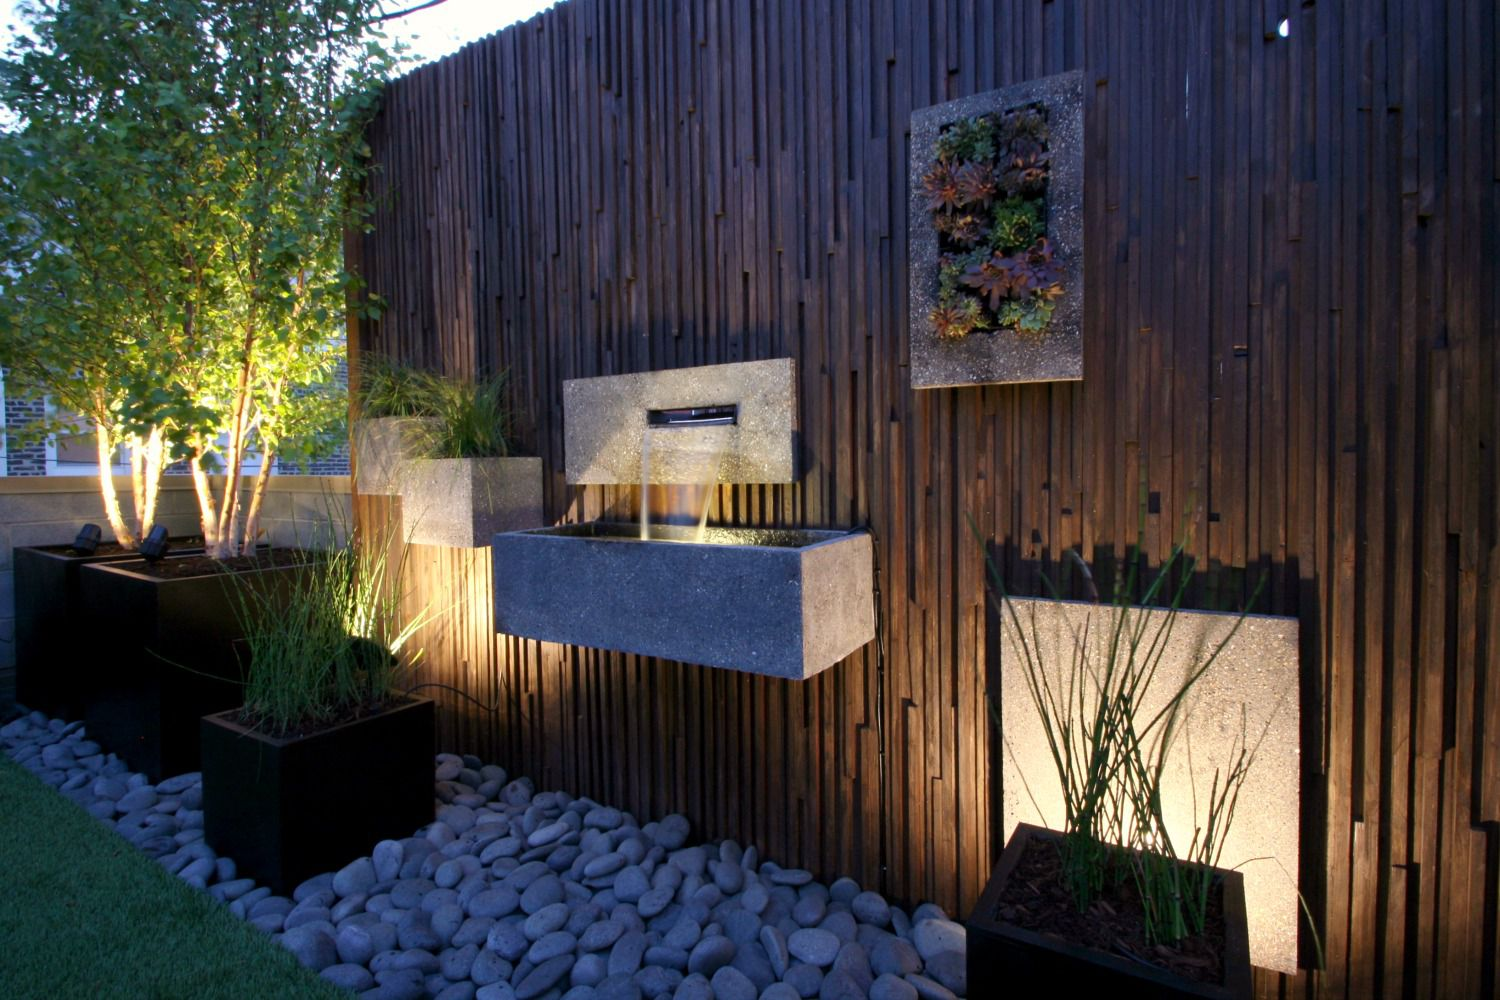 13 Ways to Gain Privacy in Your Yard